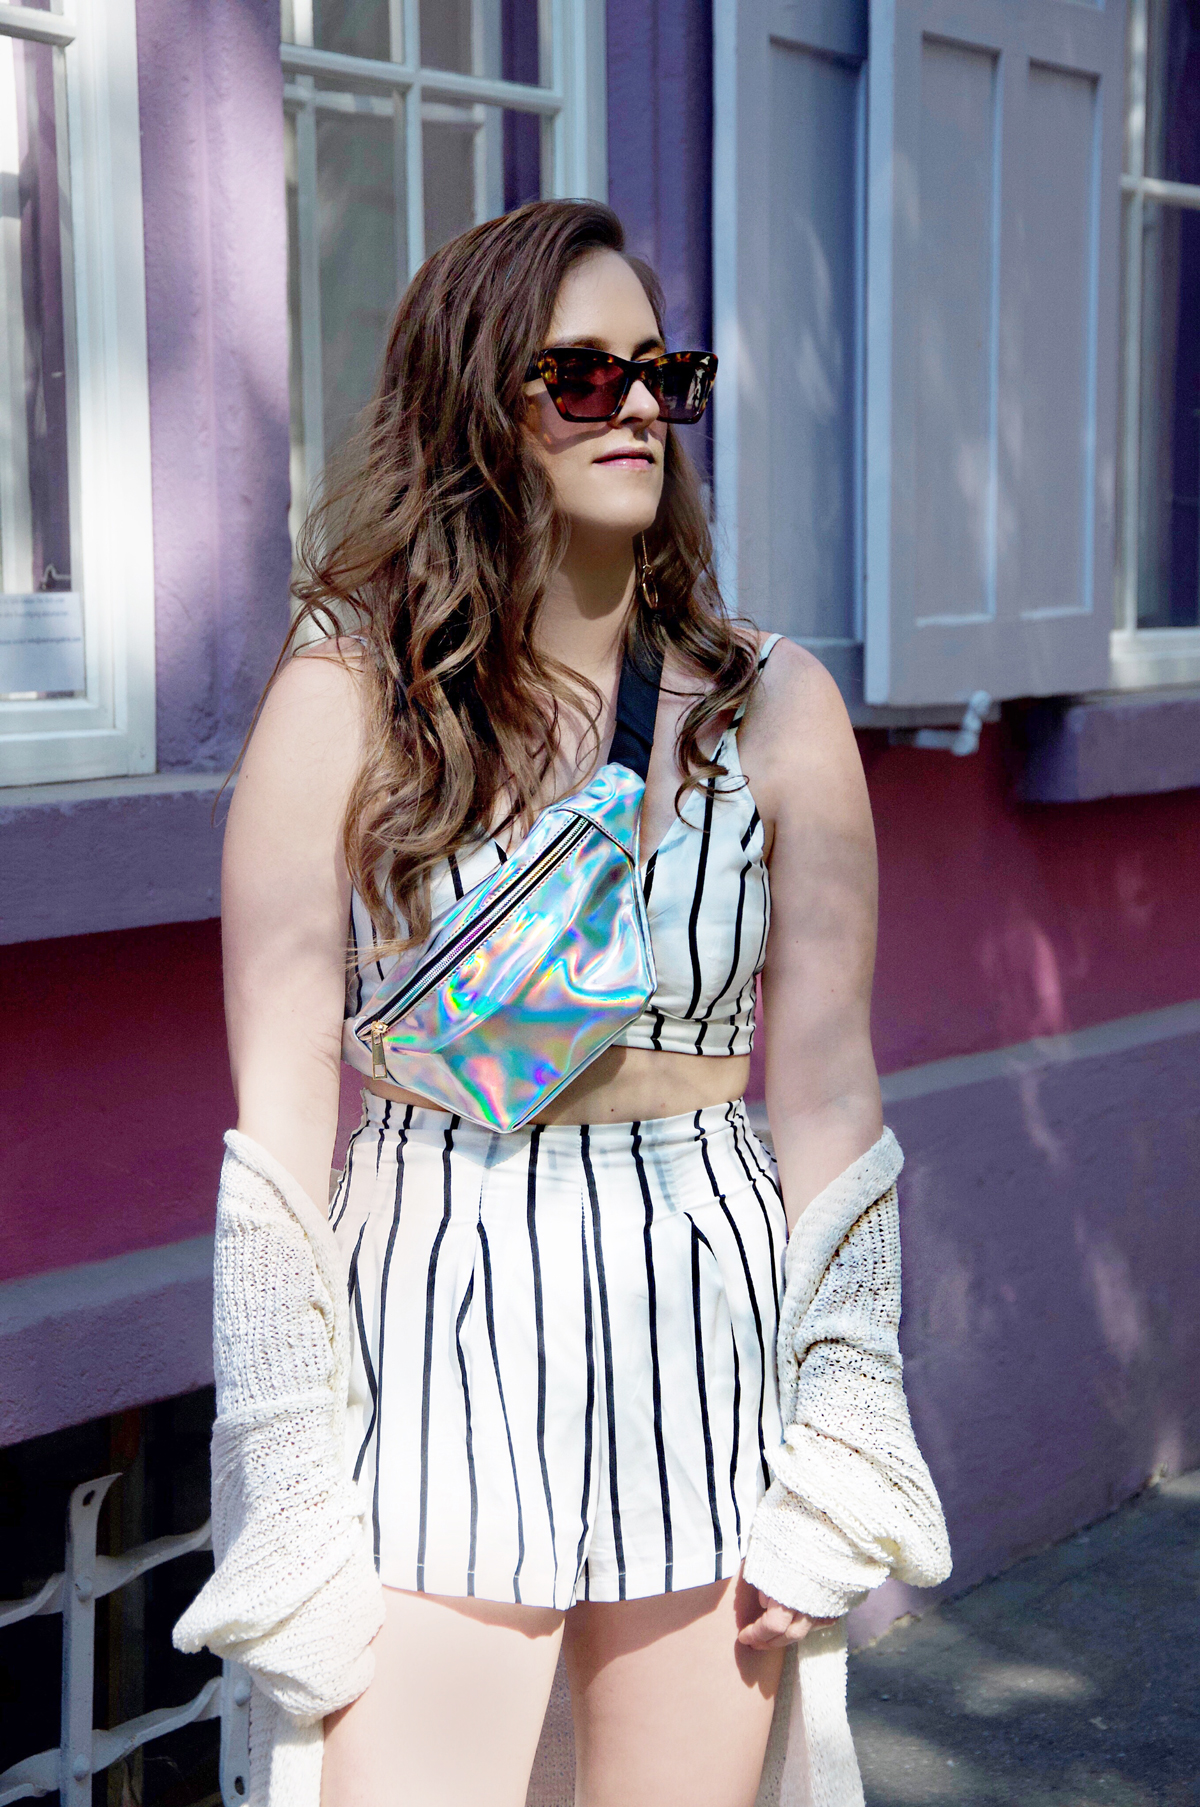 Andrea Steiner is fashion blogger from Lucerne in Switzerland. On her blog she write about new trends and stylings. Today a summer look with a black and white stripe set outfit, pink shoes and fanny pack.